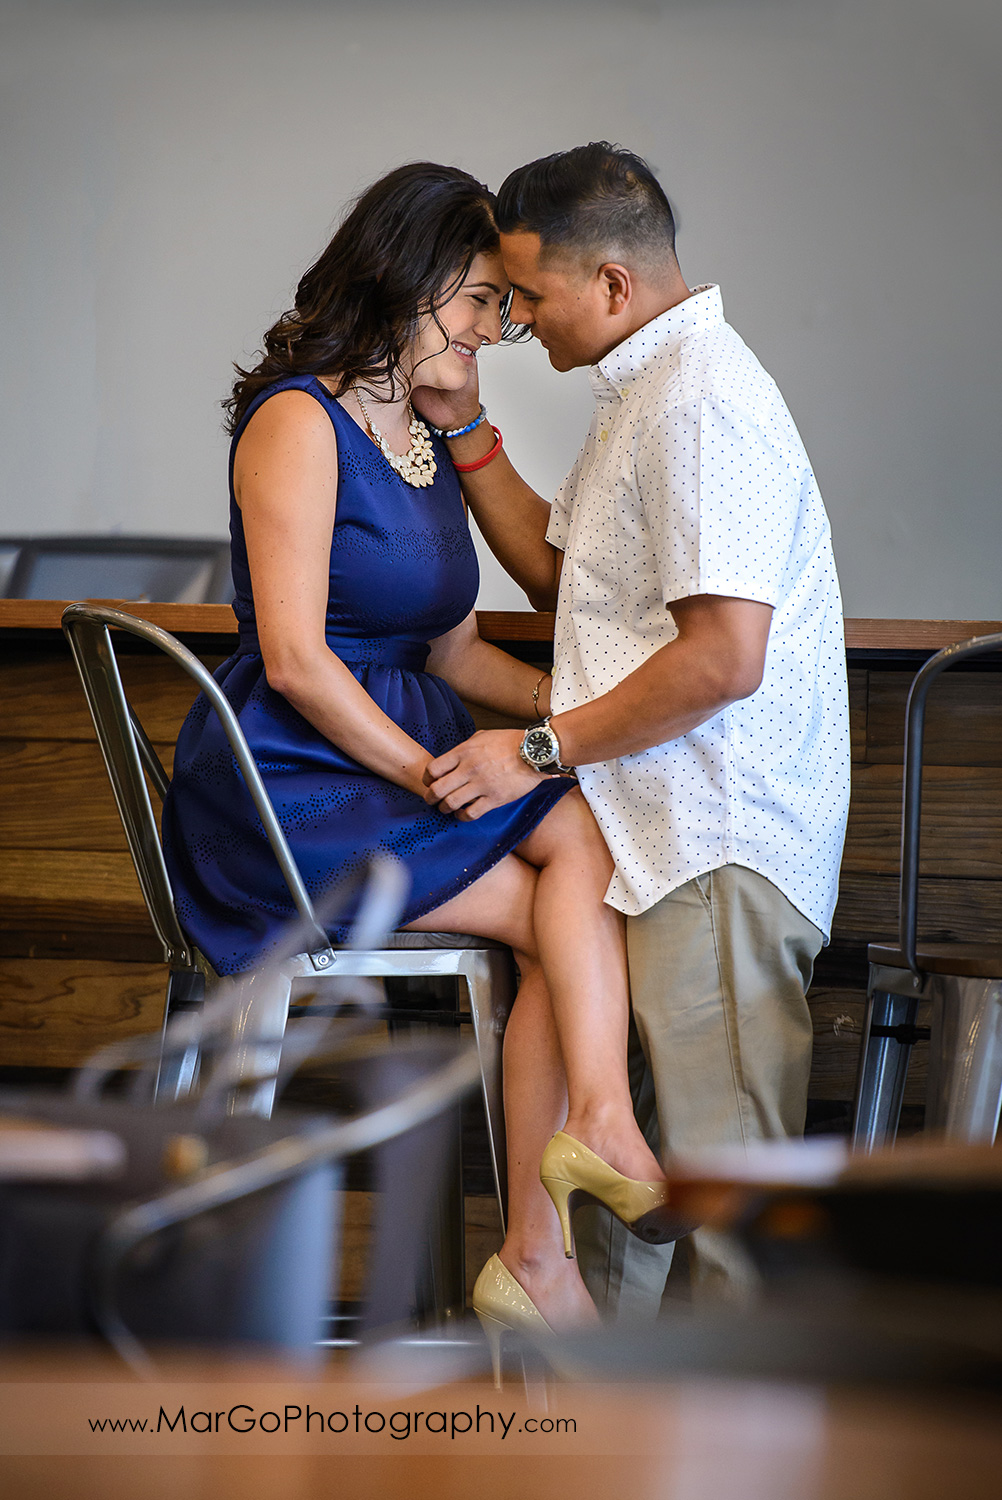 romantic shot of woman in blue dress and man in white shirt looking at each other during engagement session at San Pedro Square Market in San Jose